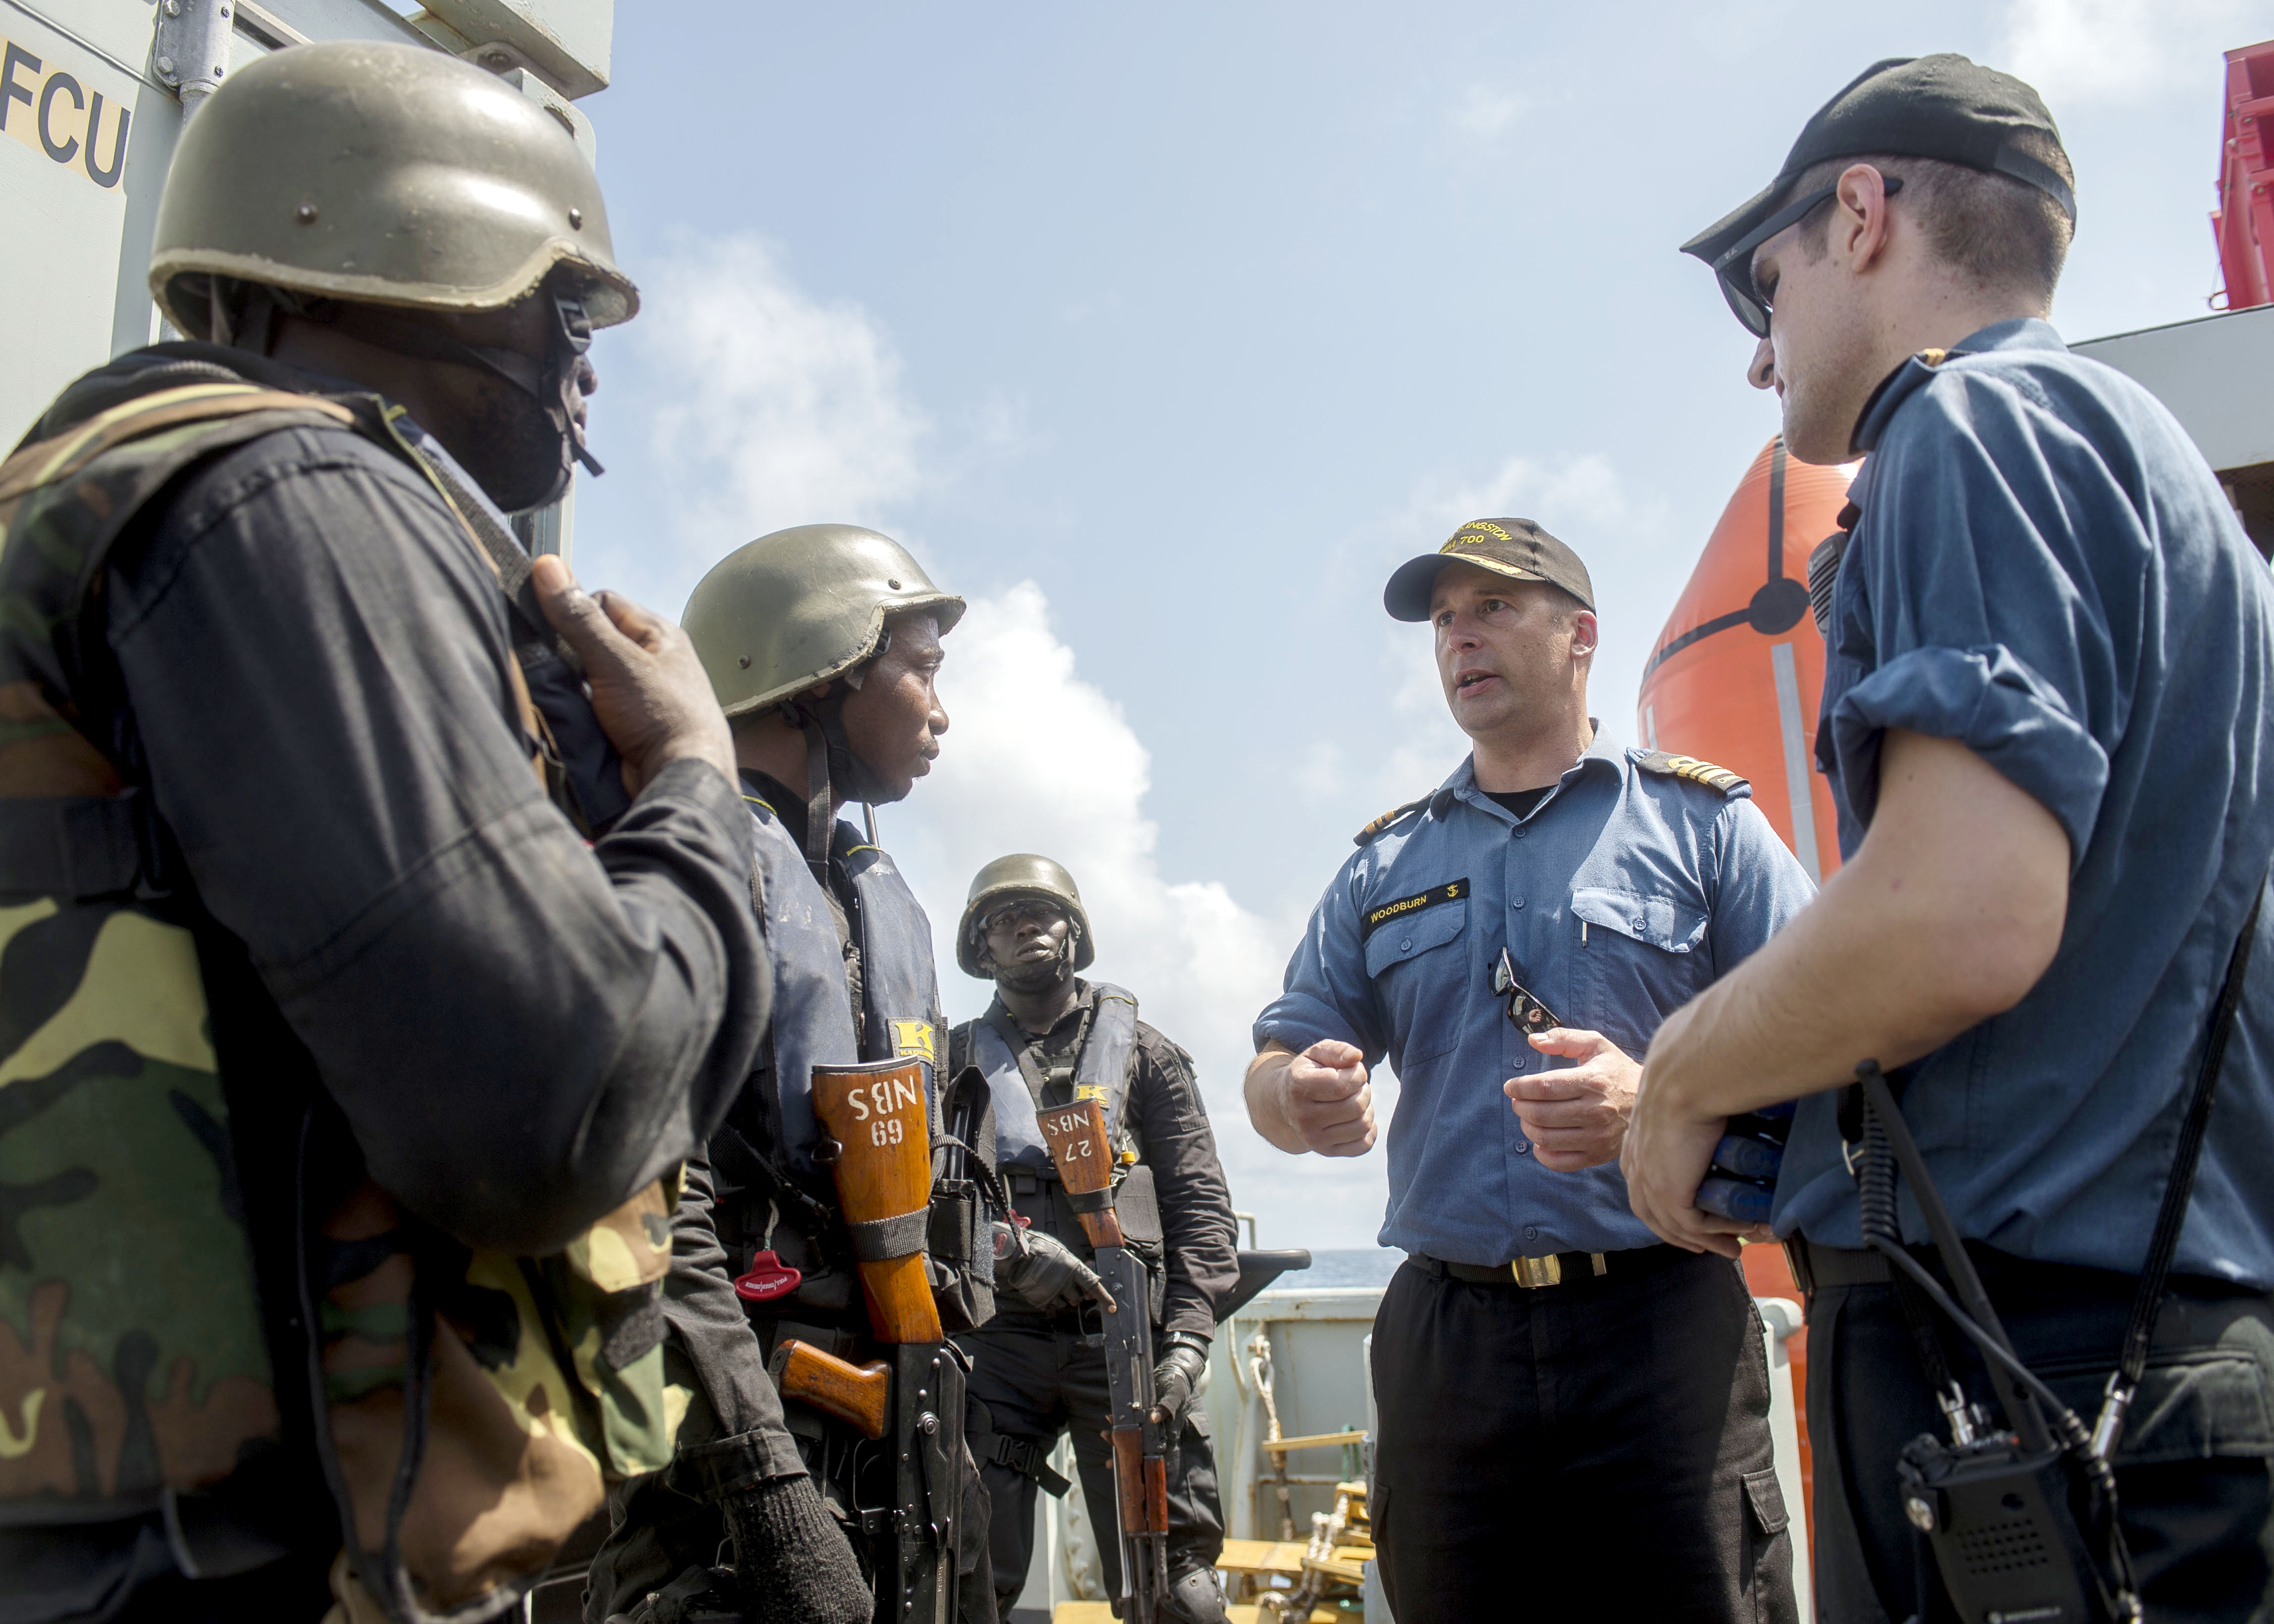 Lieutenant-Commander Matt Woodburn, Commanding Officer of HMCS Kingston and Task Force Commander for Op PROJECTION, talks with a member of the Ghana Navy after a boarding party exercise during OBANGAME EXPRESS.